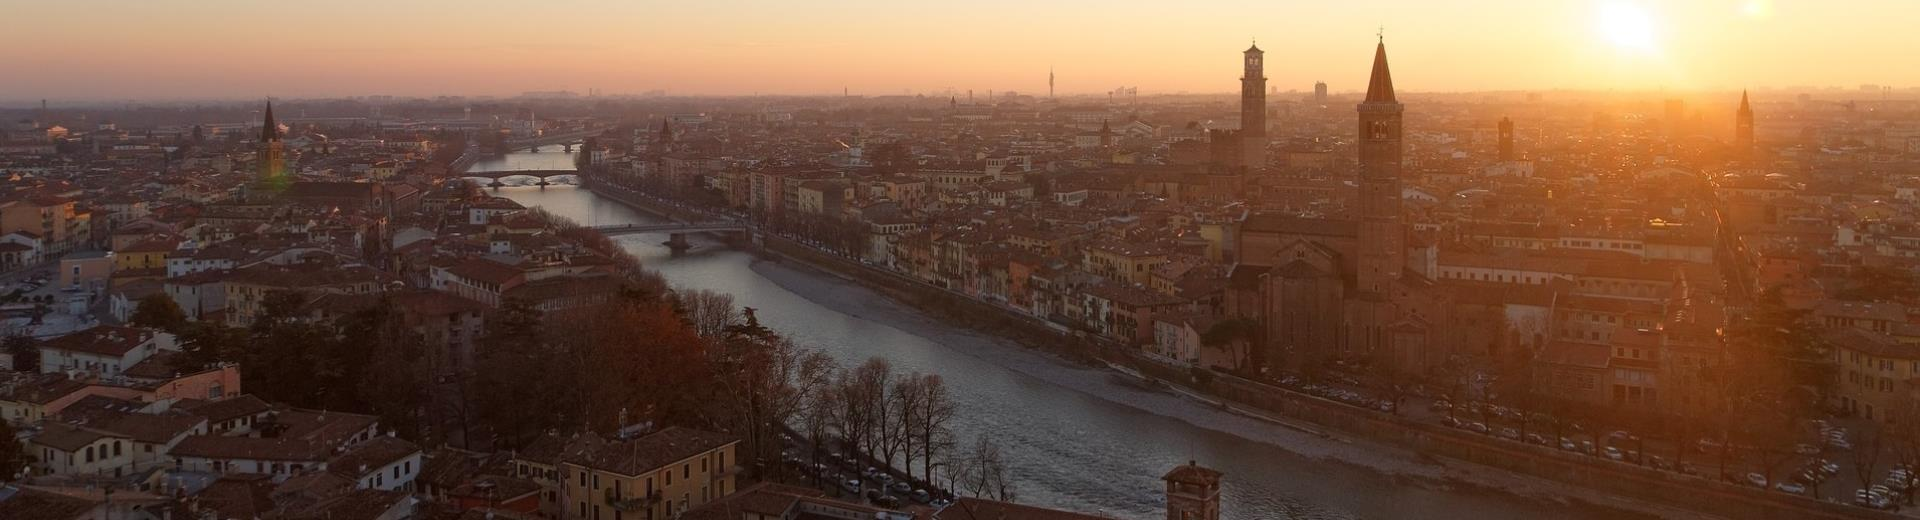 Visit Verona and stay at the Best Western Hotel Turismo